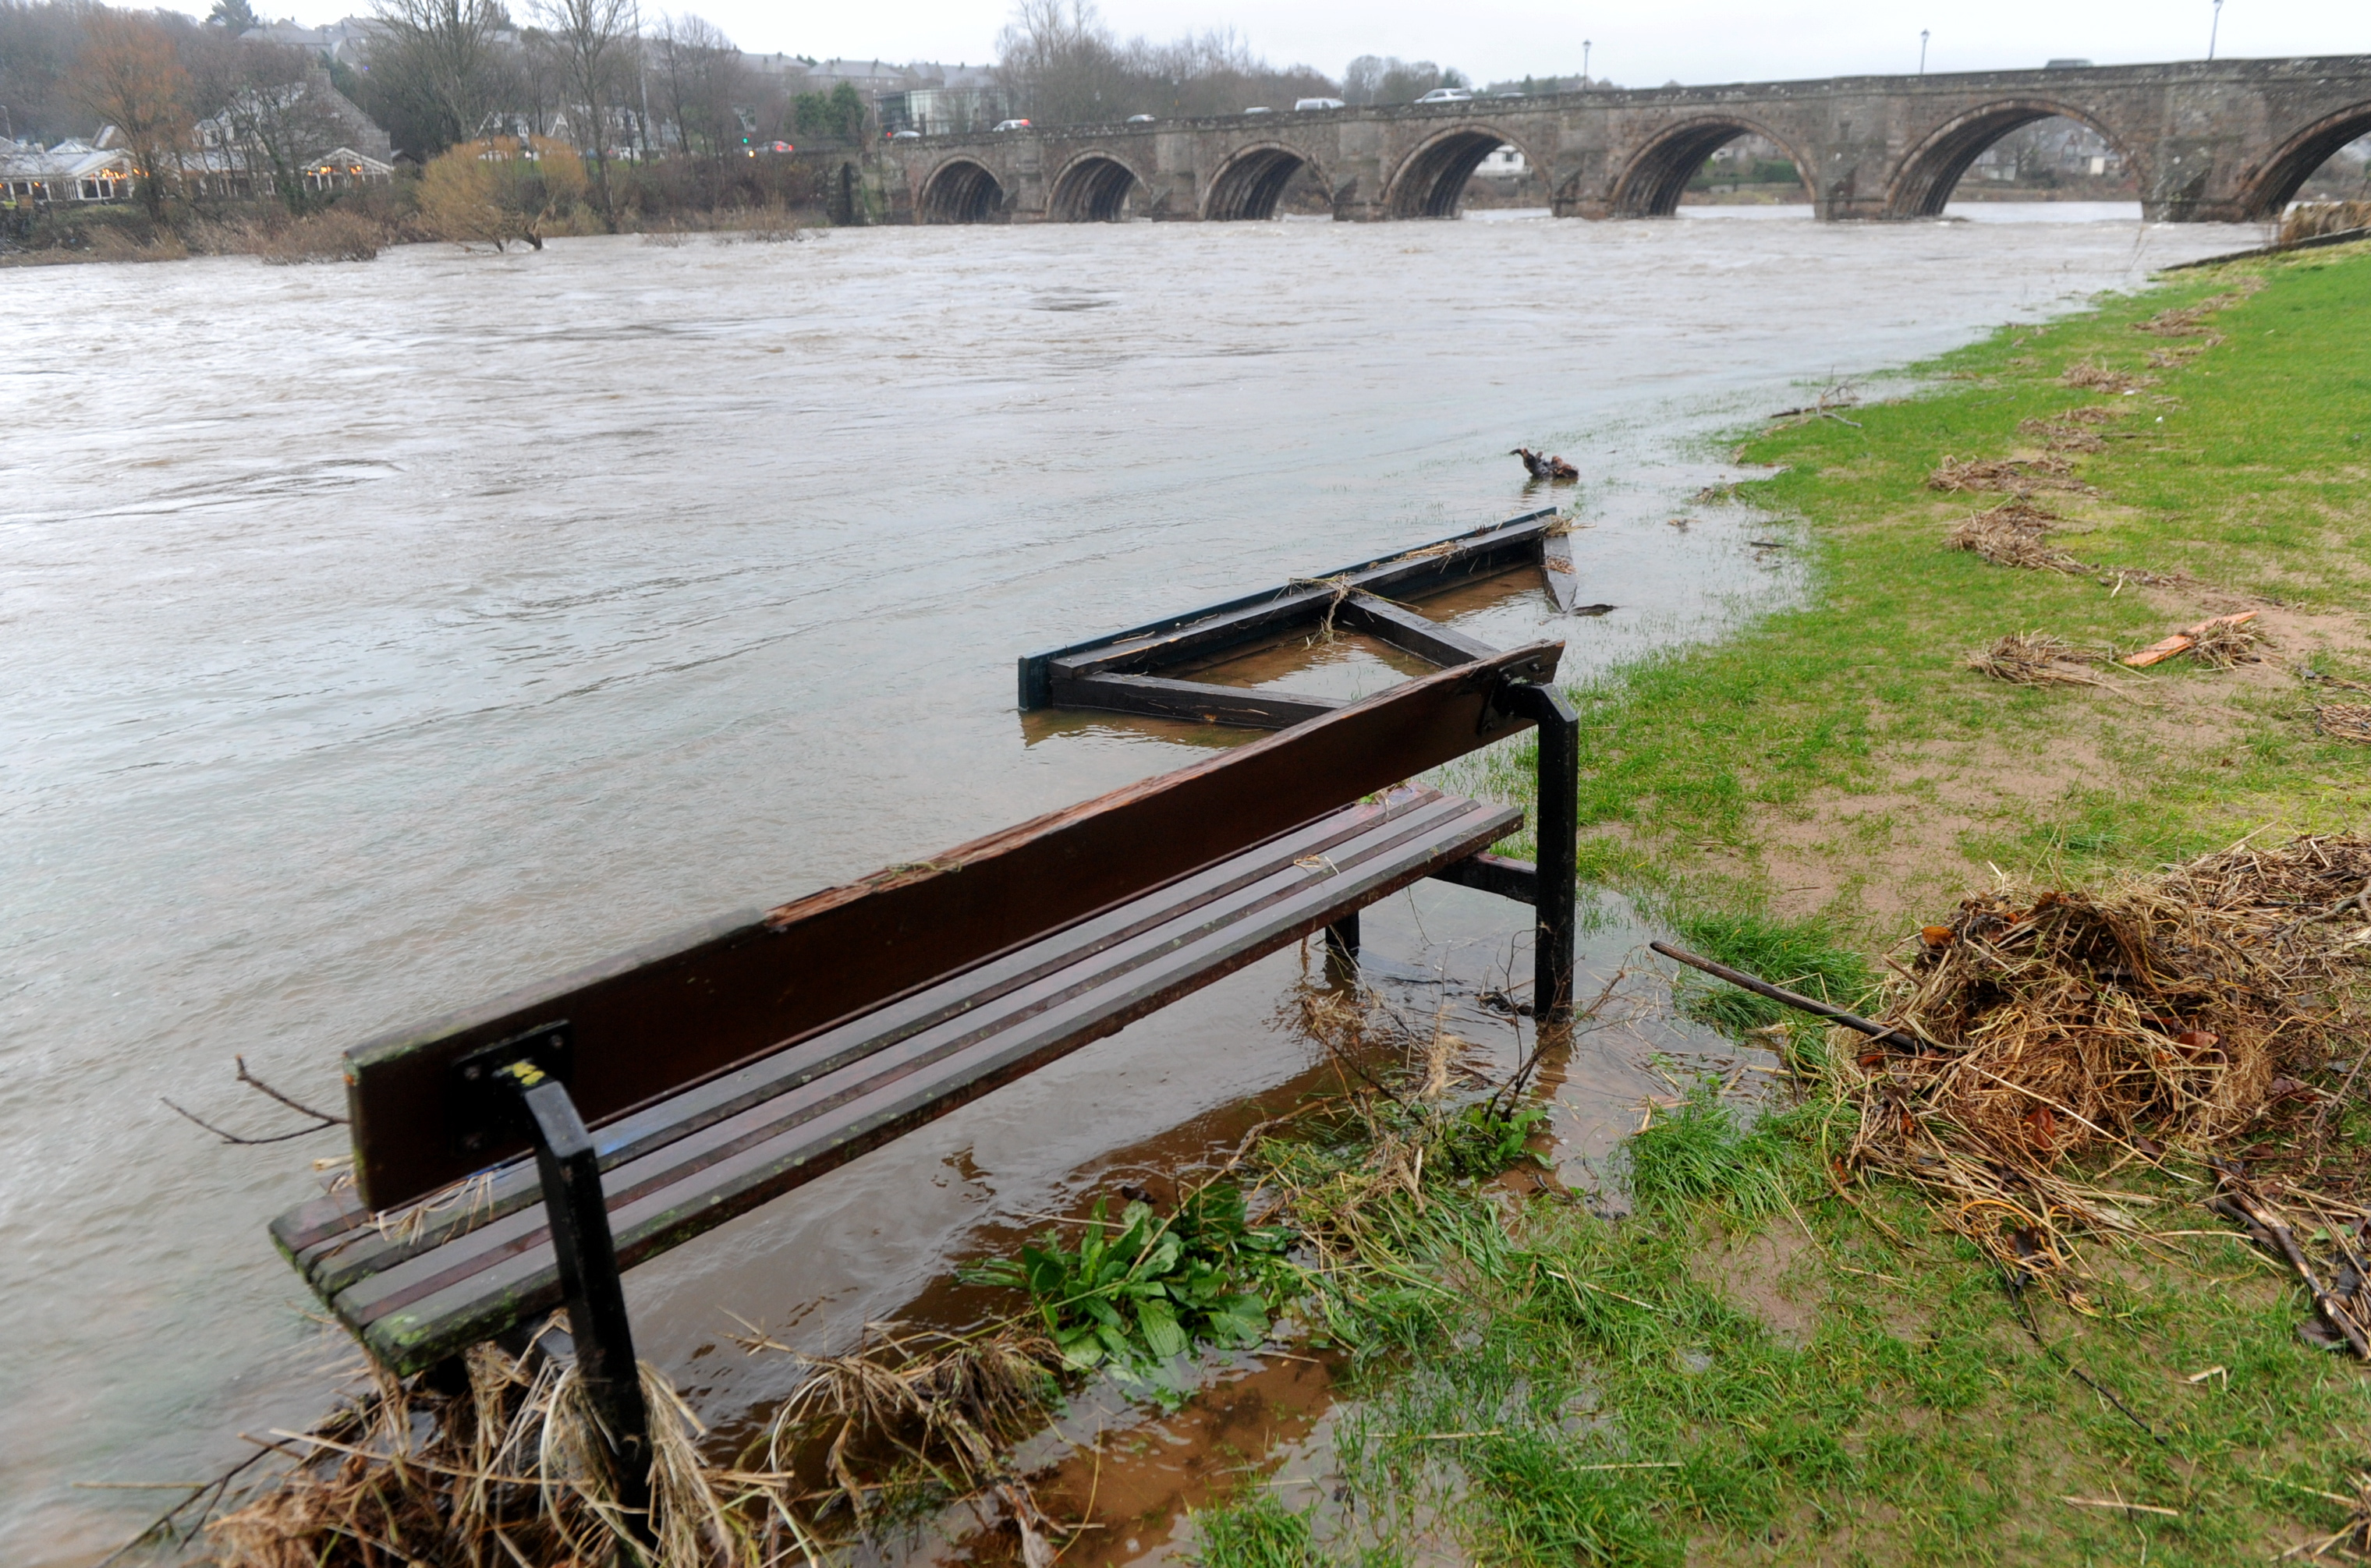 The River Dee broke its banks again after heavy rain at the weekend. Picture by Chris Sumner